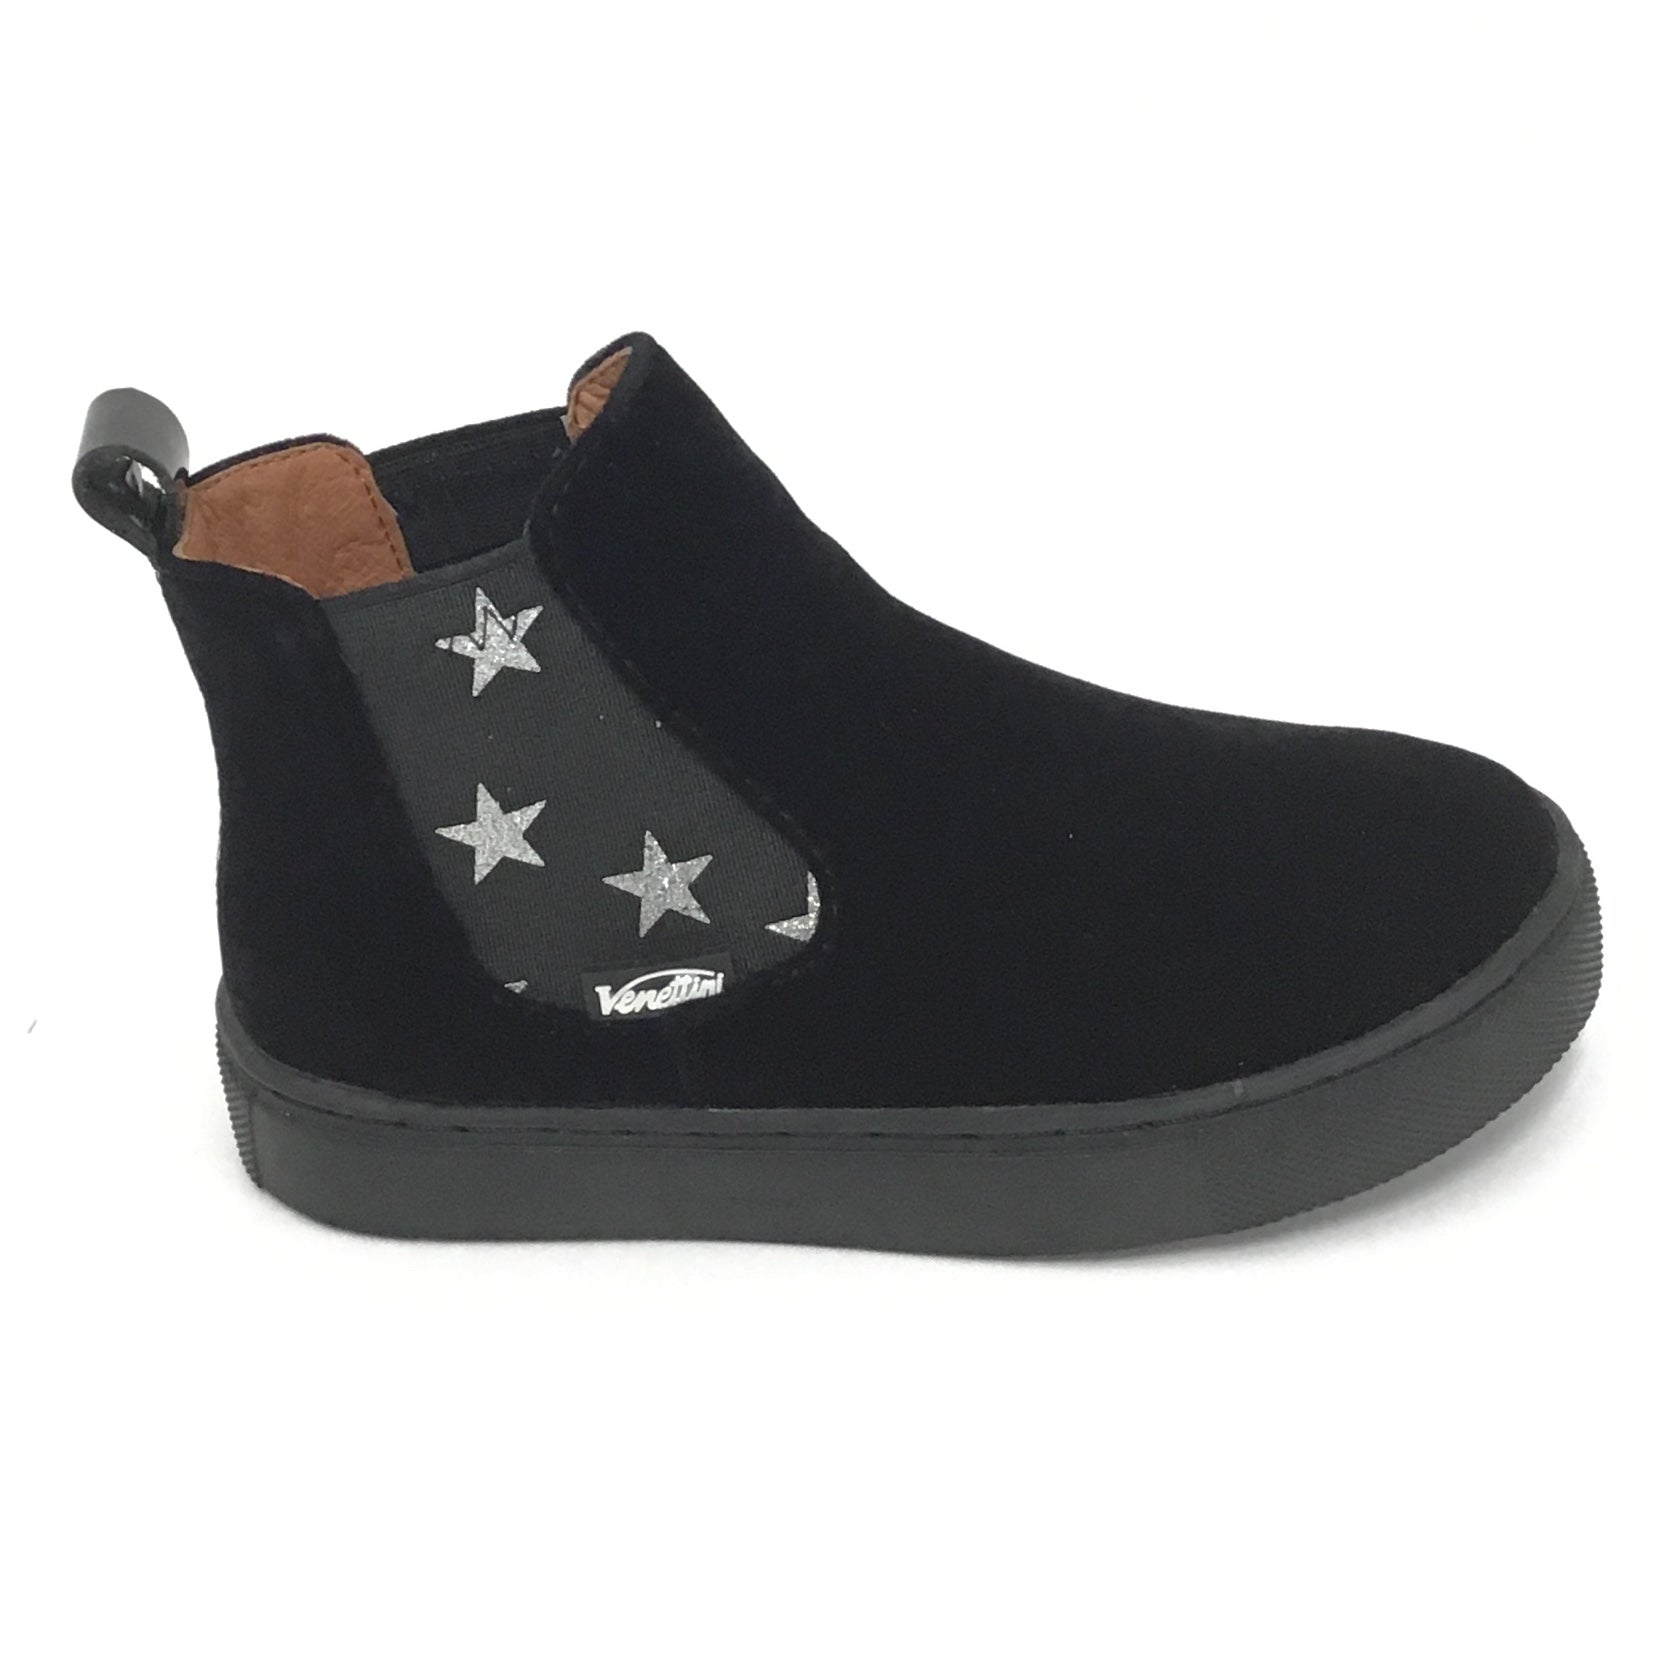 Venettini Black Velvet Bootie With Stars